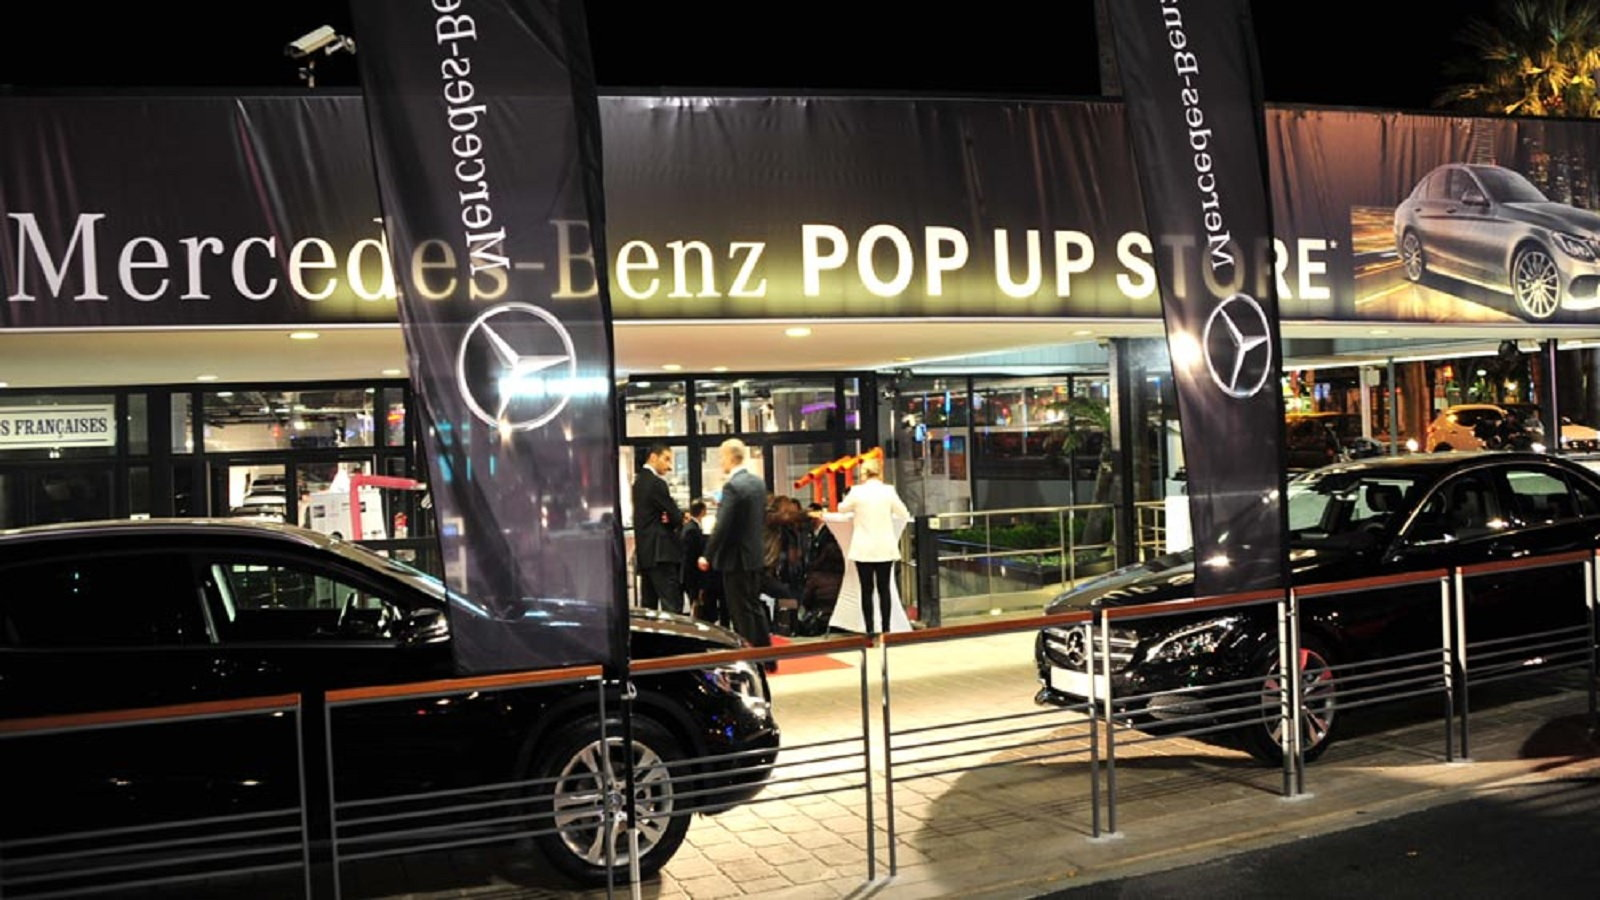 MB has a Pop Up Store Coming To A Mall Near You